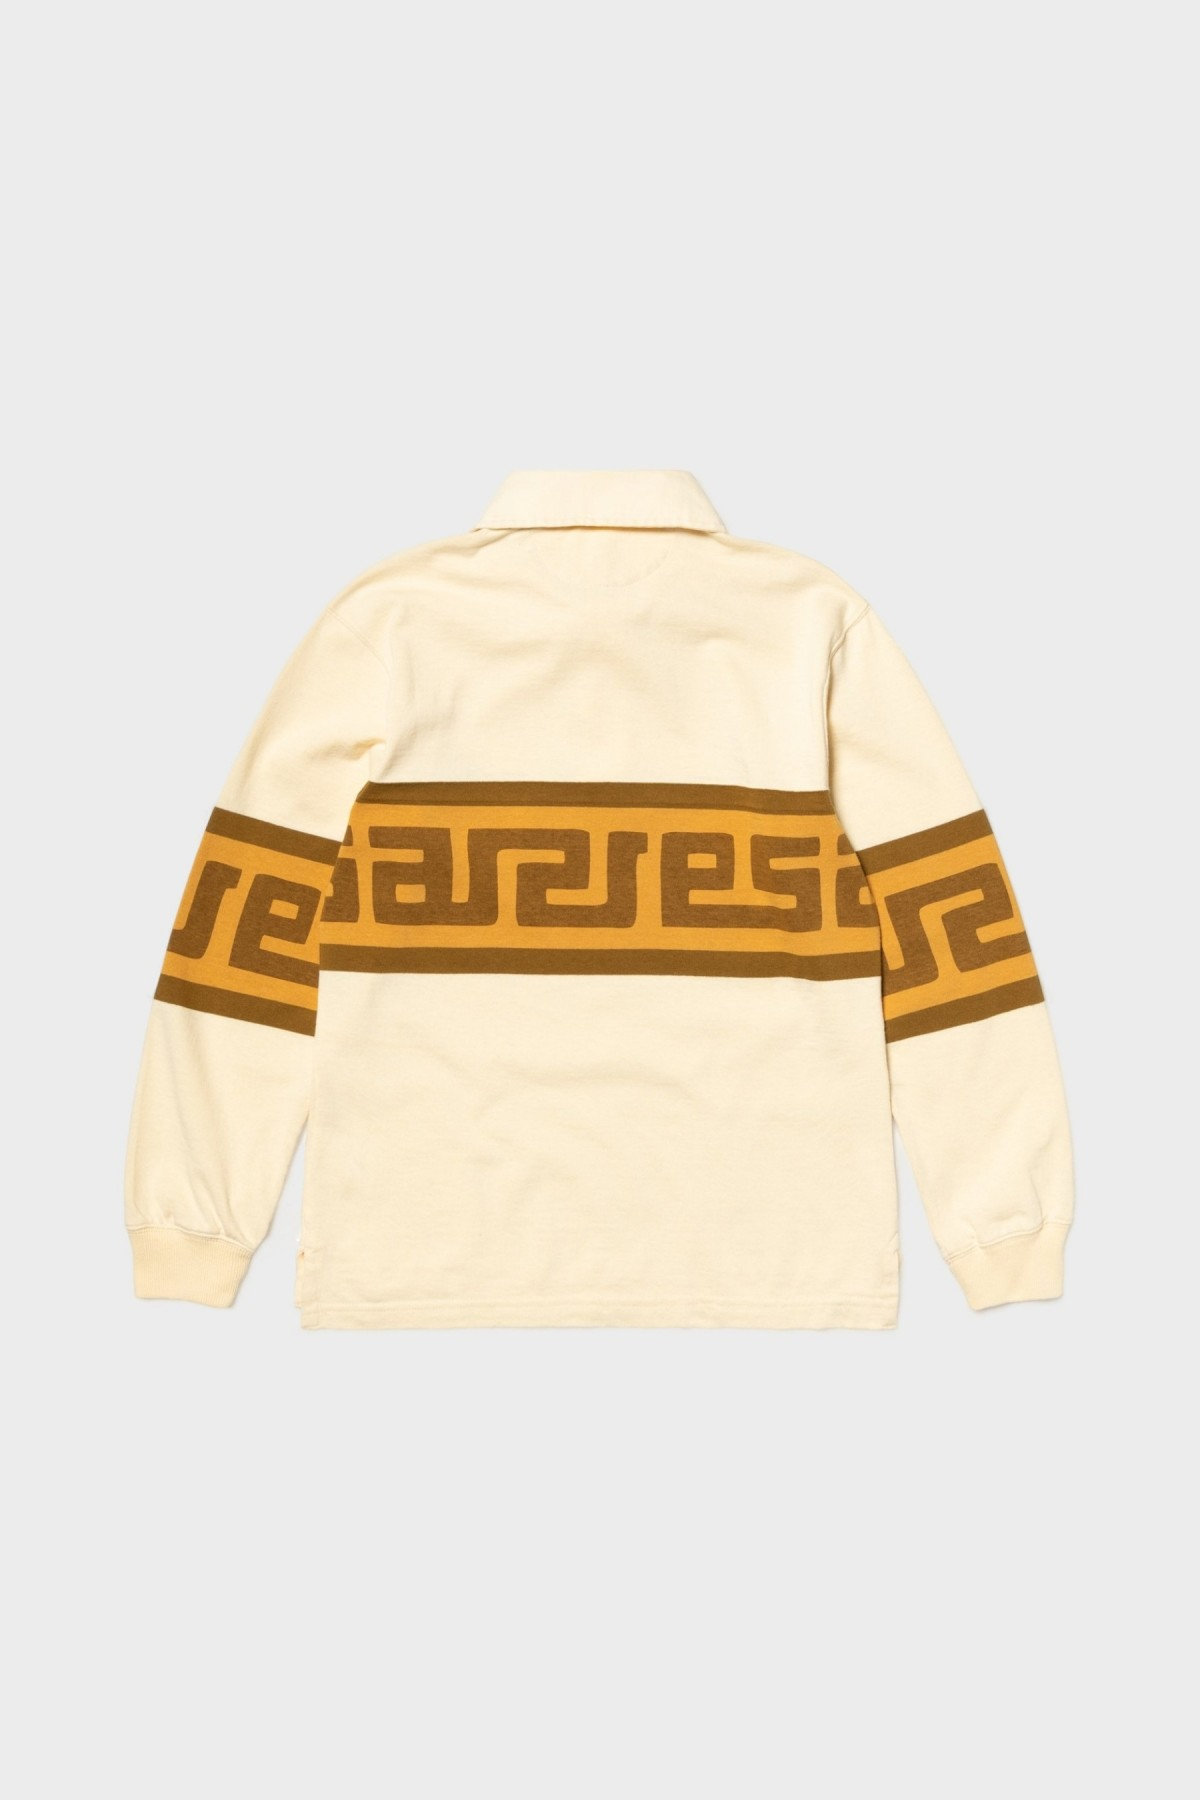 Aries Arise Meandros Rugby Shirt in Beige